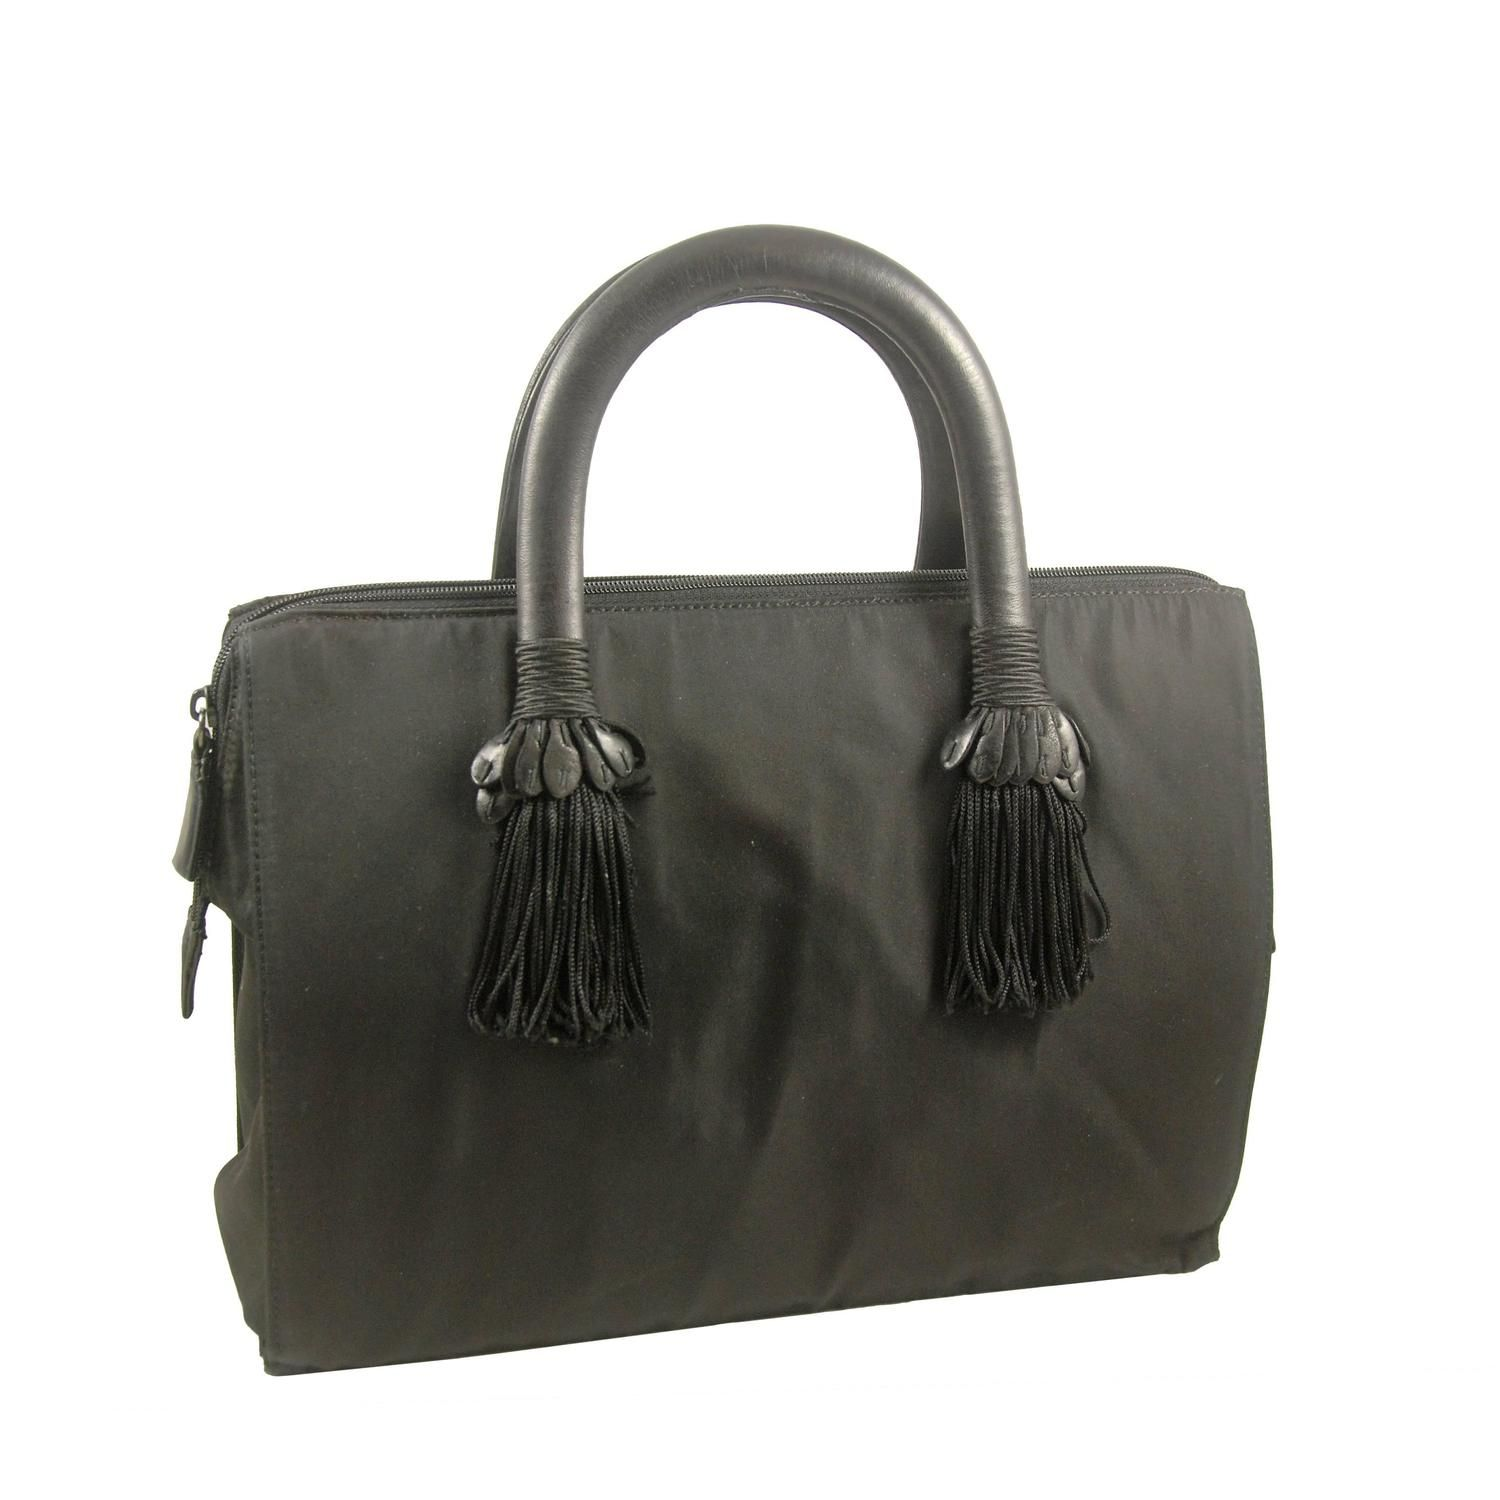 497f06b3c742 For Sale on - Vintage Prada speedy type bag from the late or early This bag  is embellished with black fringe on the front and rear.